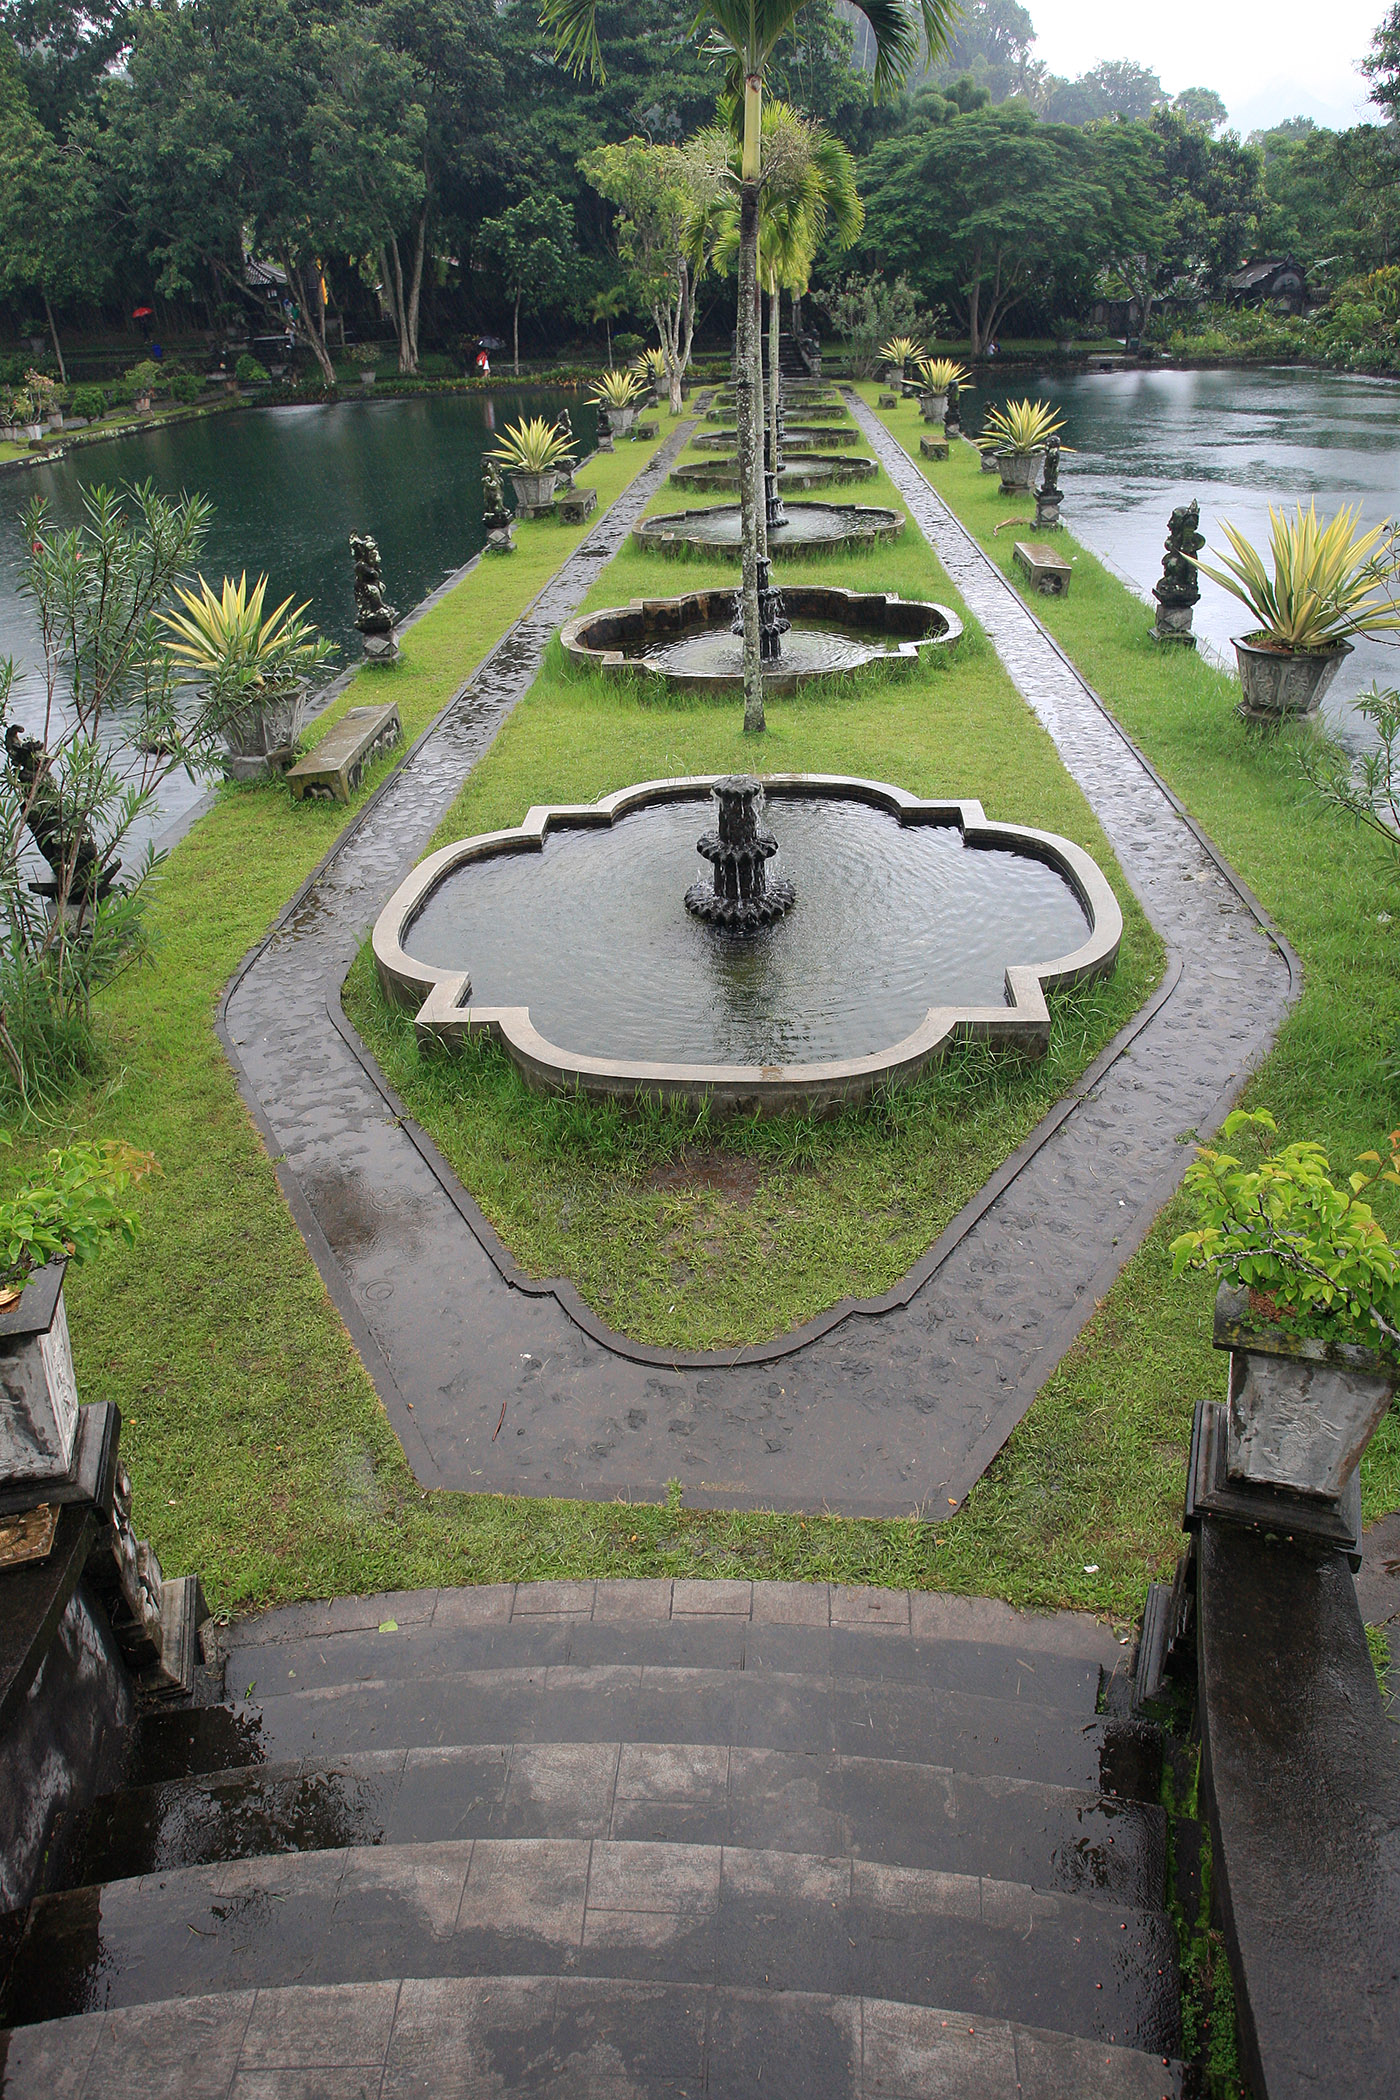 Tirta Gangga Overlook